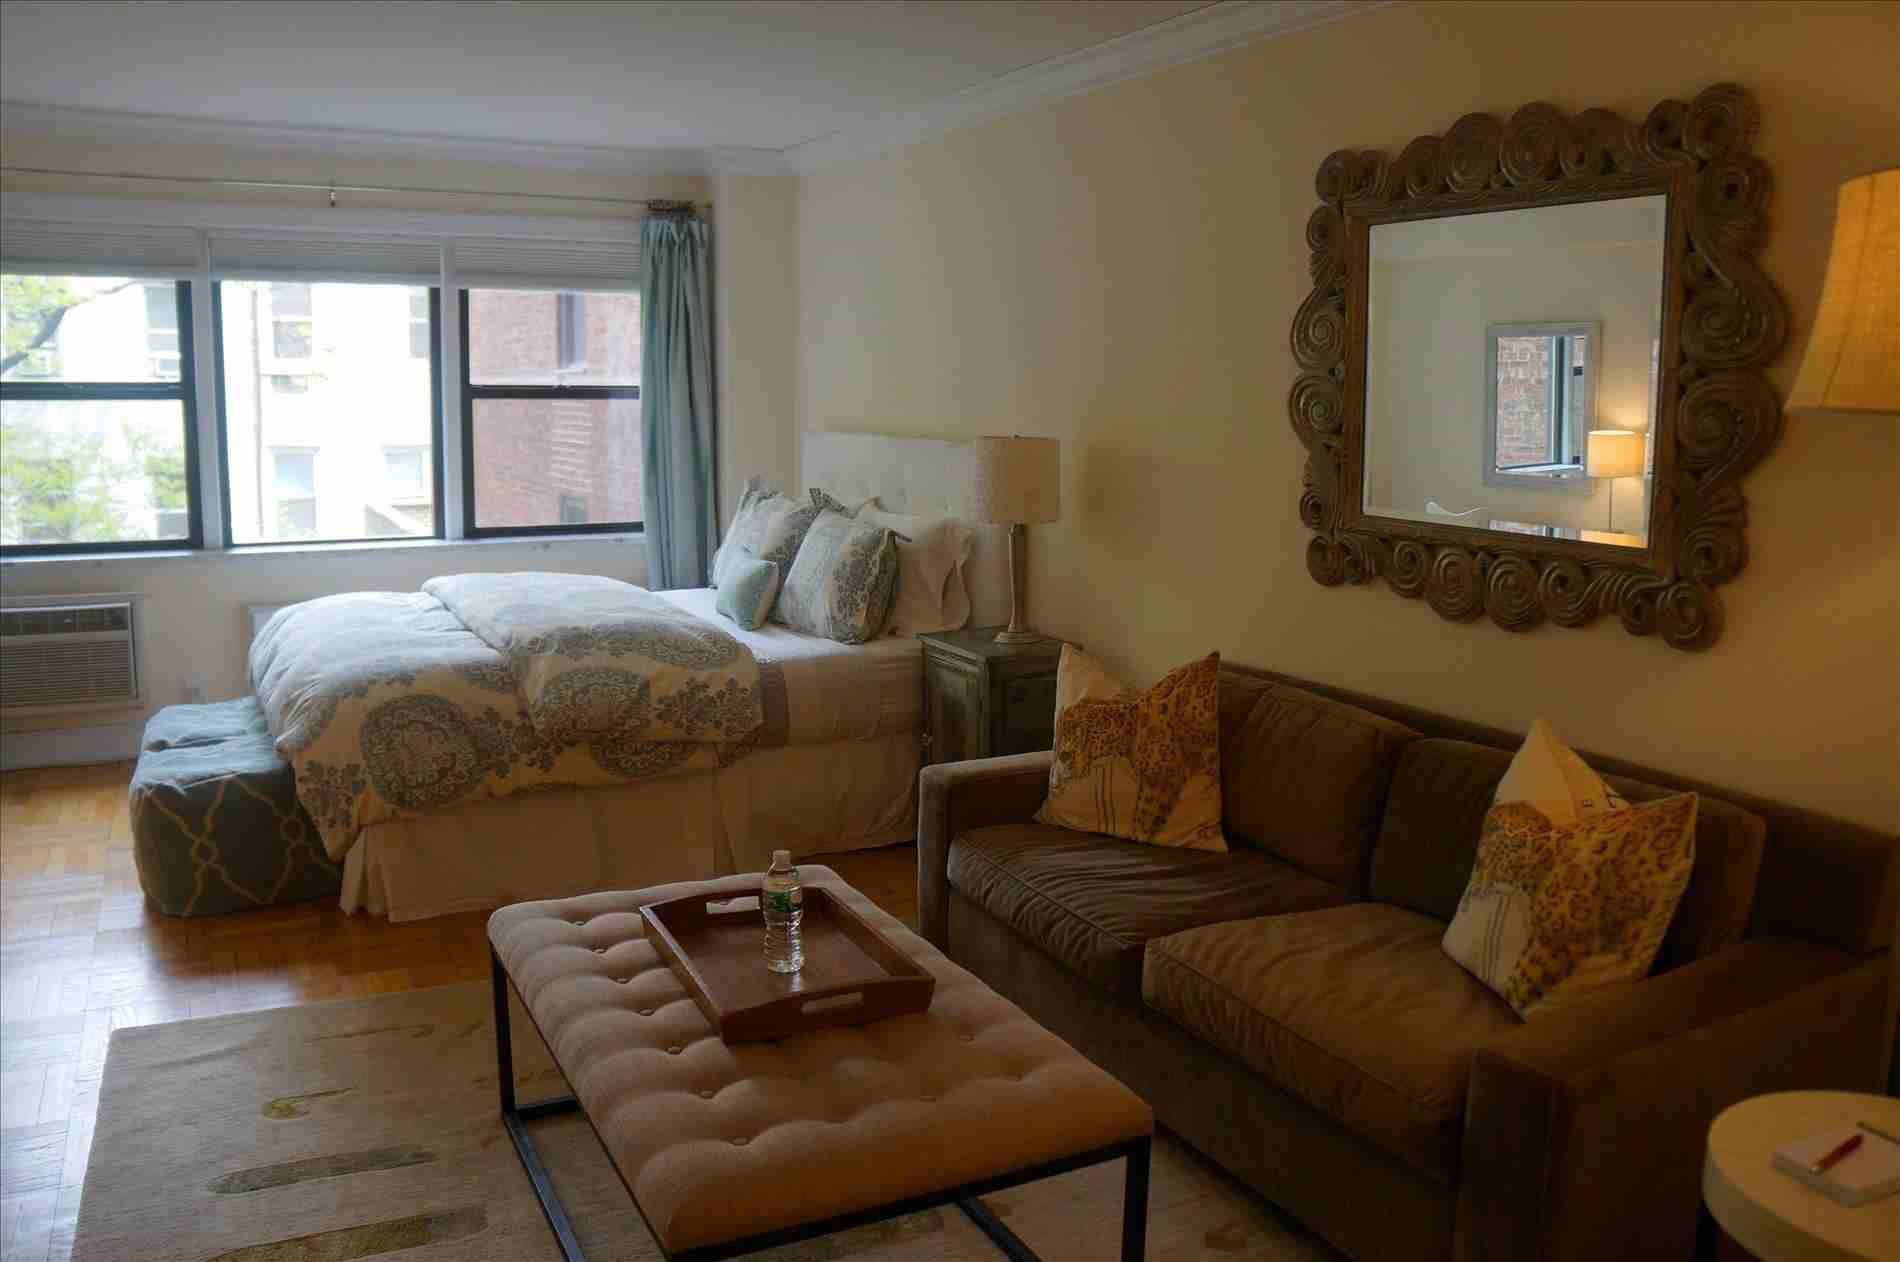 One Bedroom Apartments For Rent Affordable Studio Apartments For Rent In Nyc Bronx No Credit Check Bronx City Bedroom One Bedroom Apartment Single Bedroom